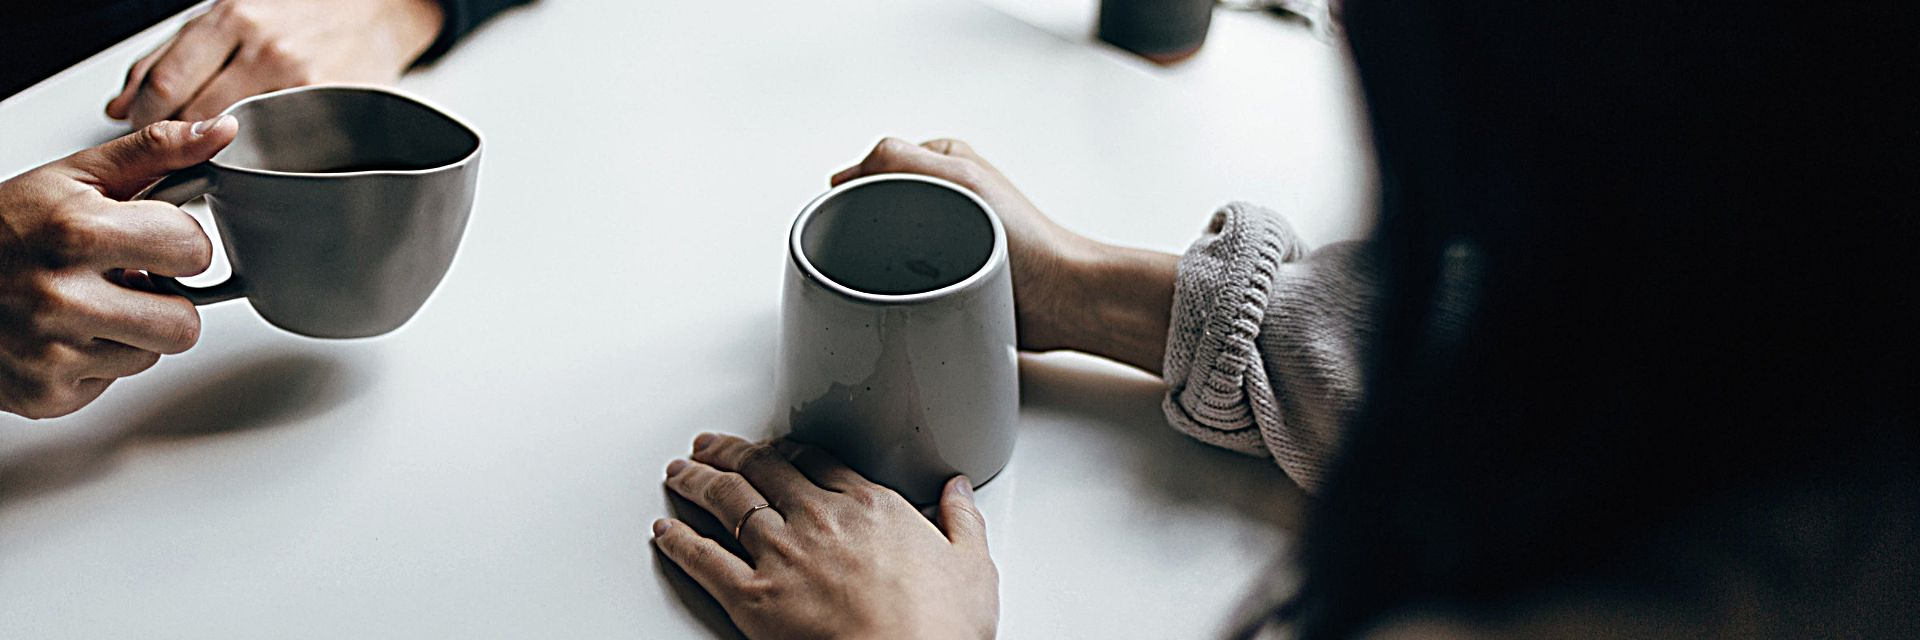 Two people opposite each other, each with a coffee cup in hand. The image only shows their arms and the cups.